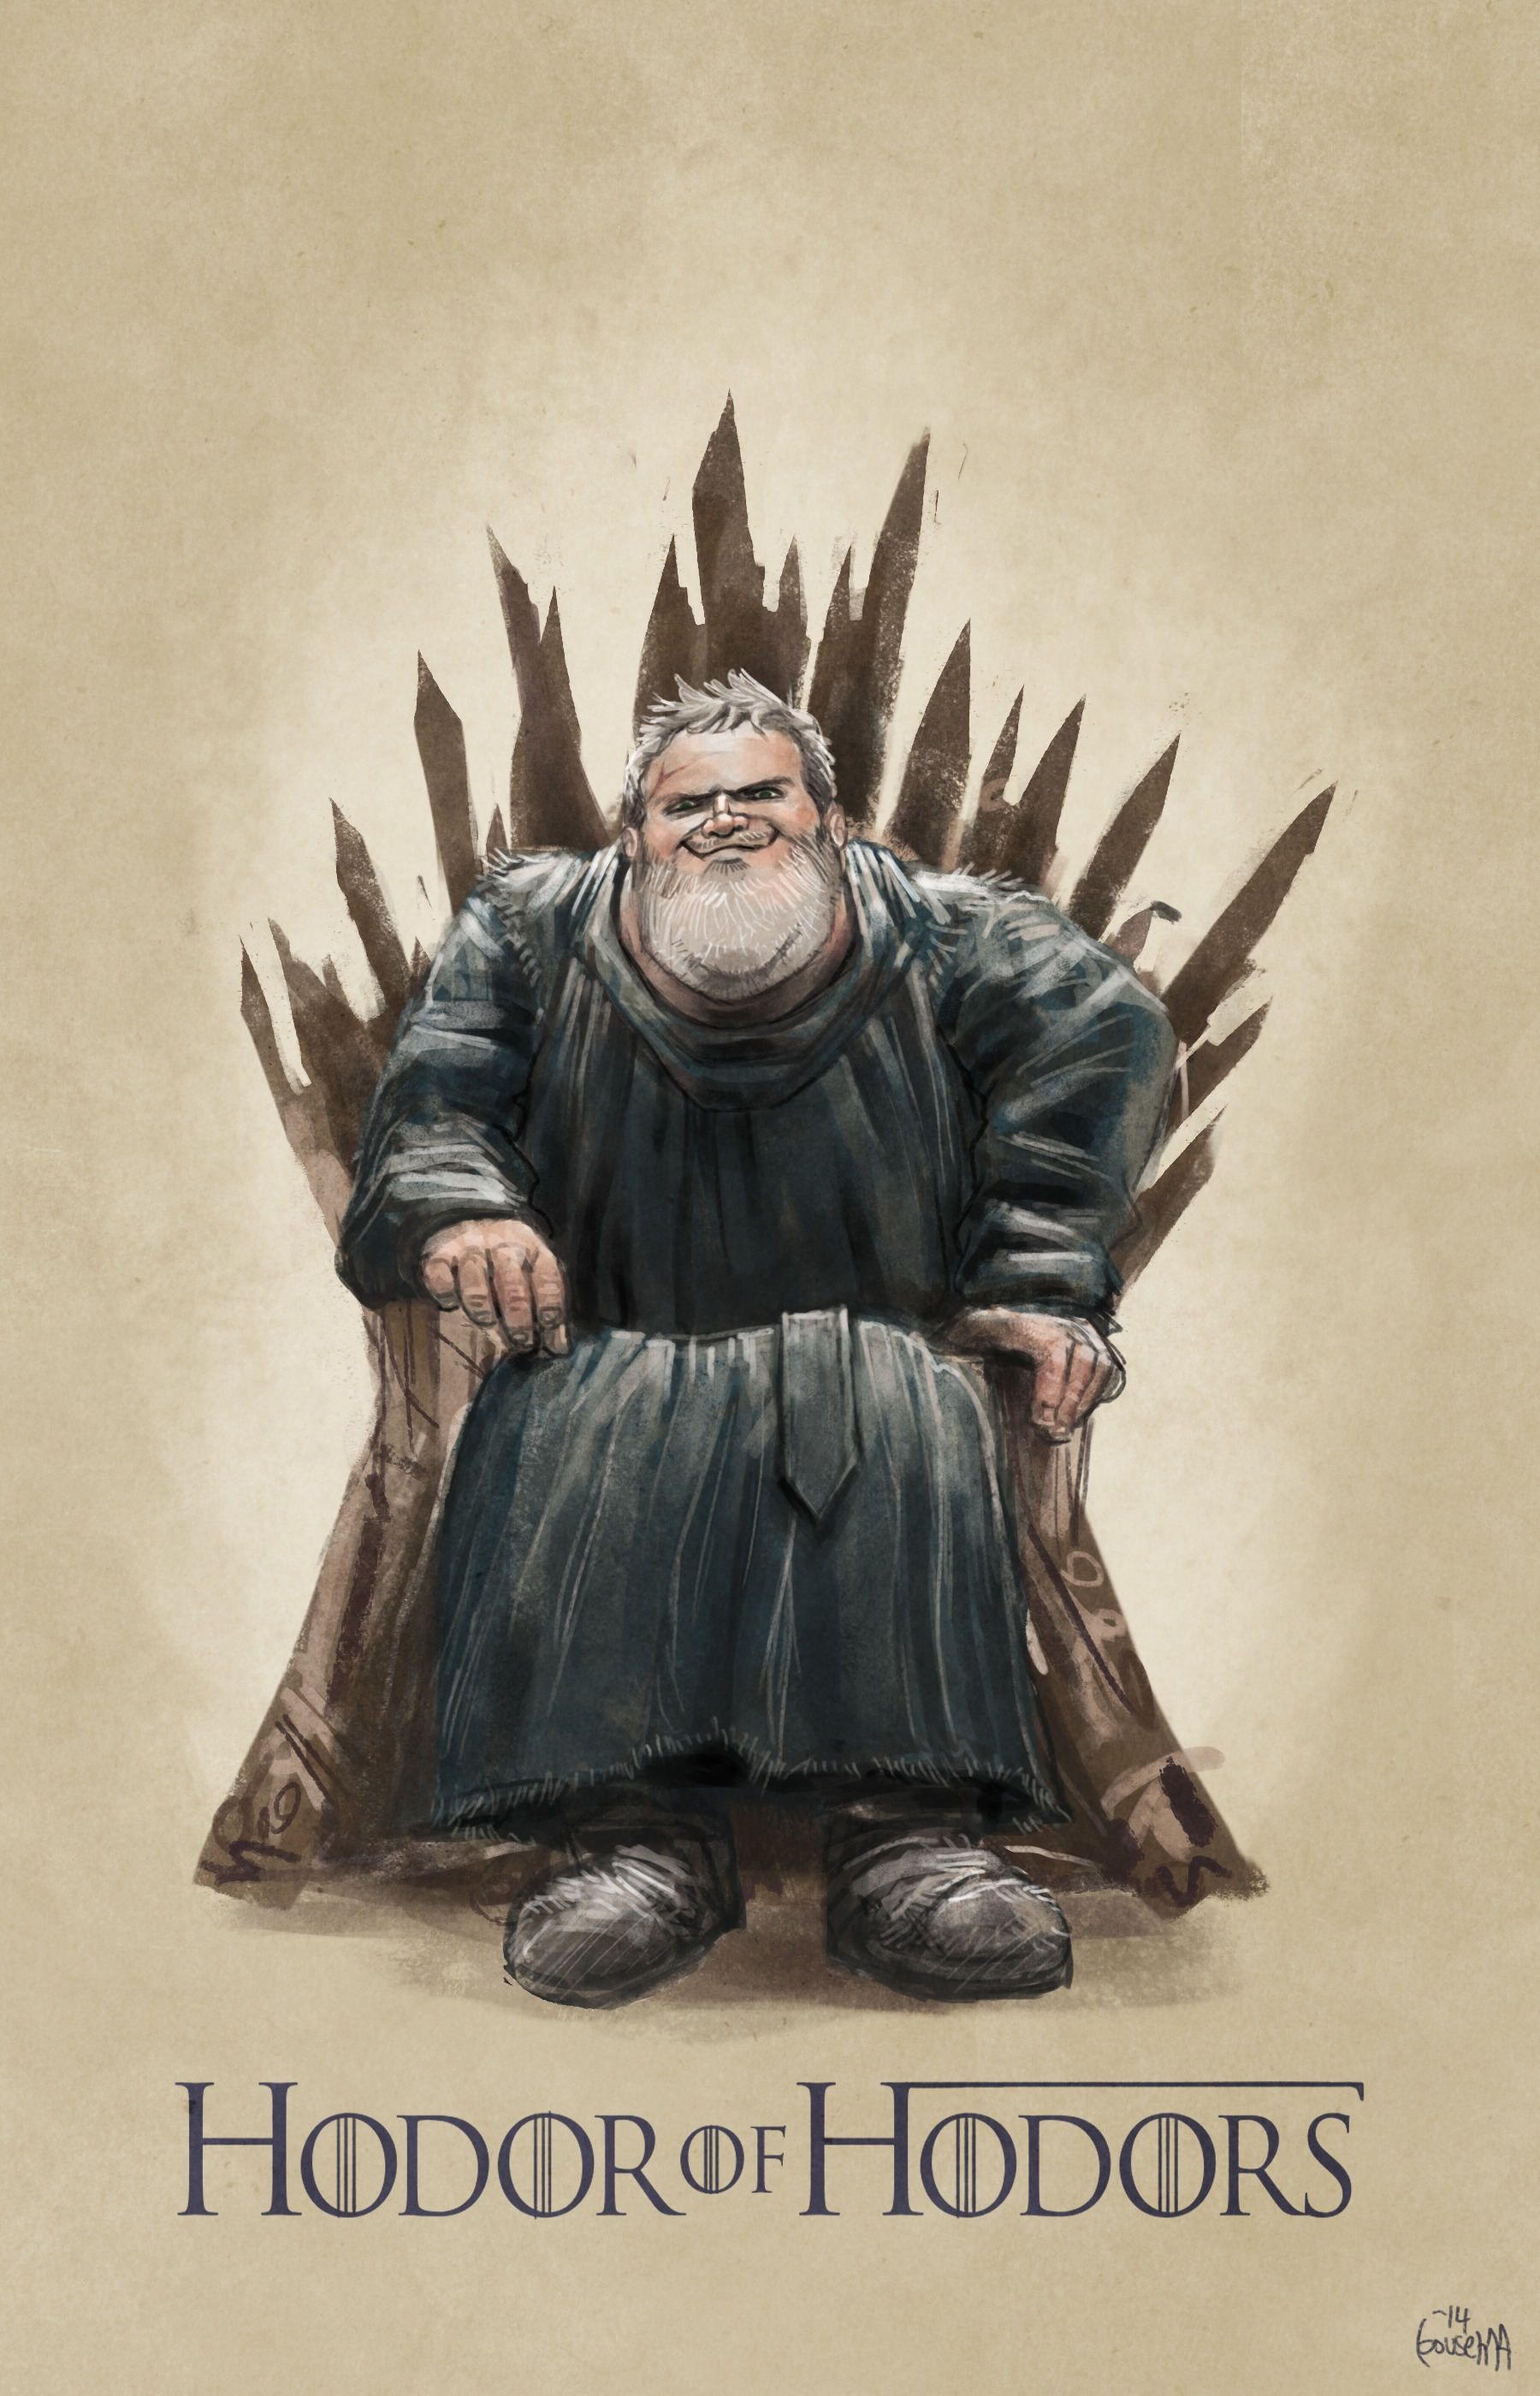 A Game Of Thrones Pick Me Up Outstanding Got Fan Art Flicks And